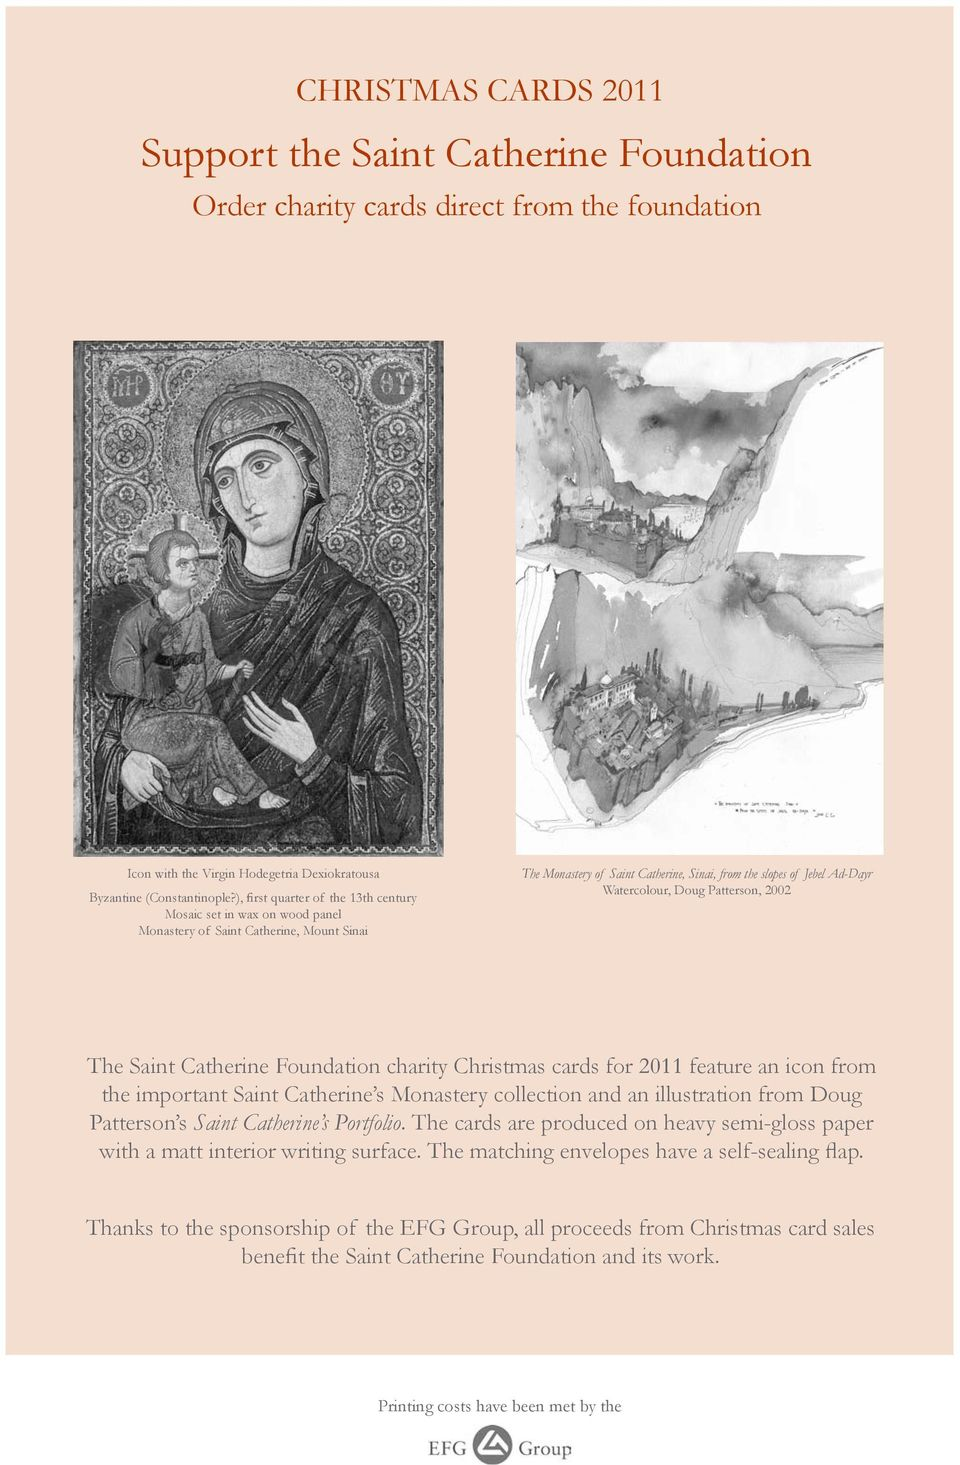 Doug Patterson, 2002 The Saint Catherine Foundation charity Christmas cards for 2011 feature an icon from the important Saint Catherine s Monastery collection and an illustration from Doug Patterson